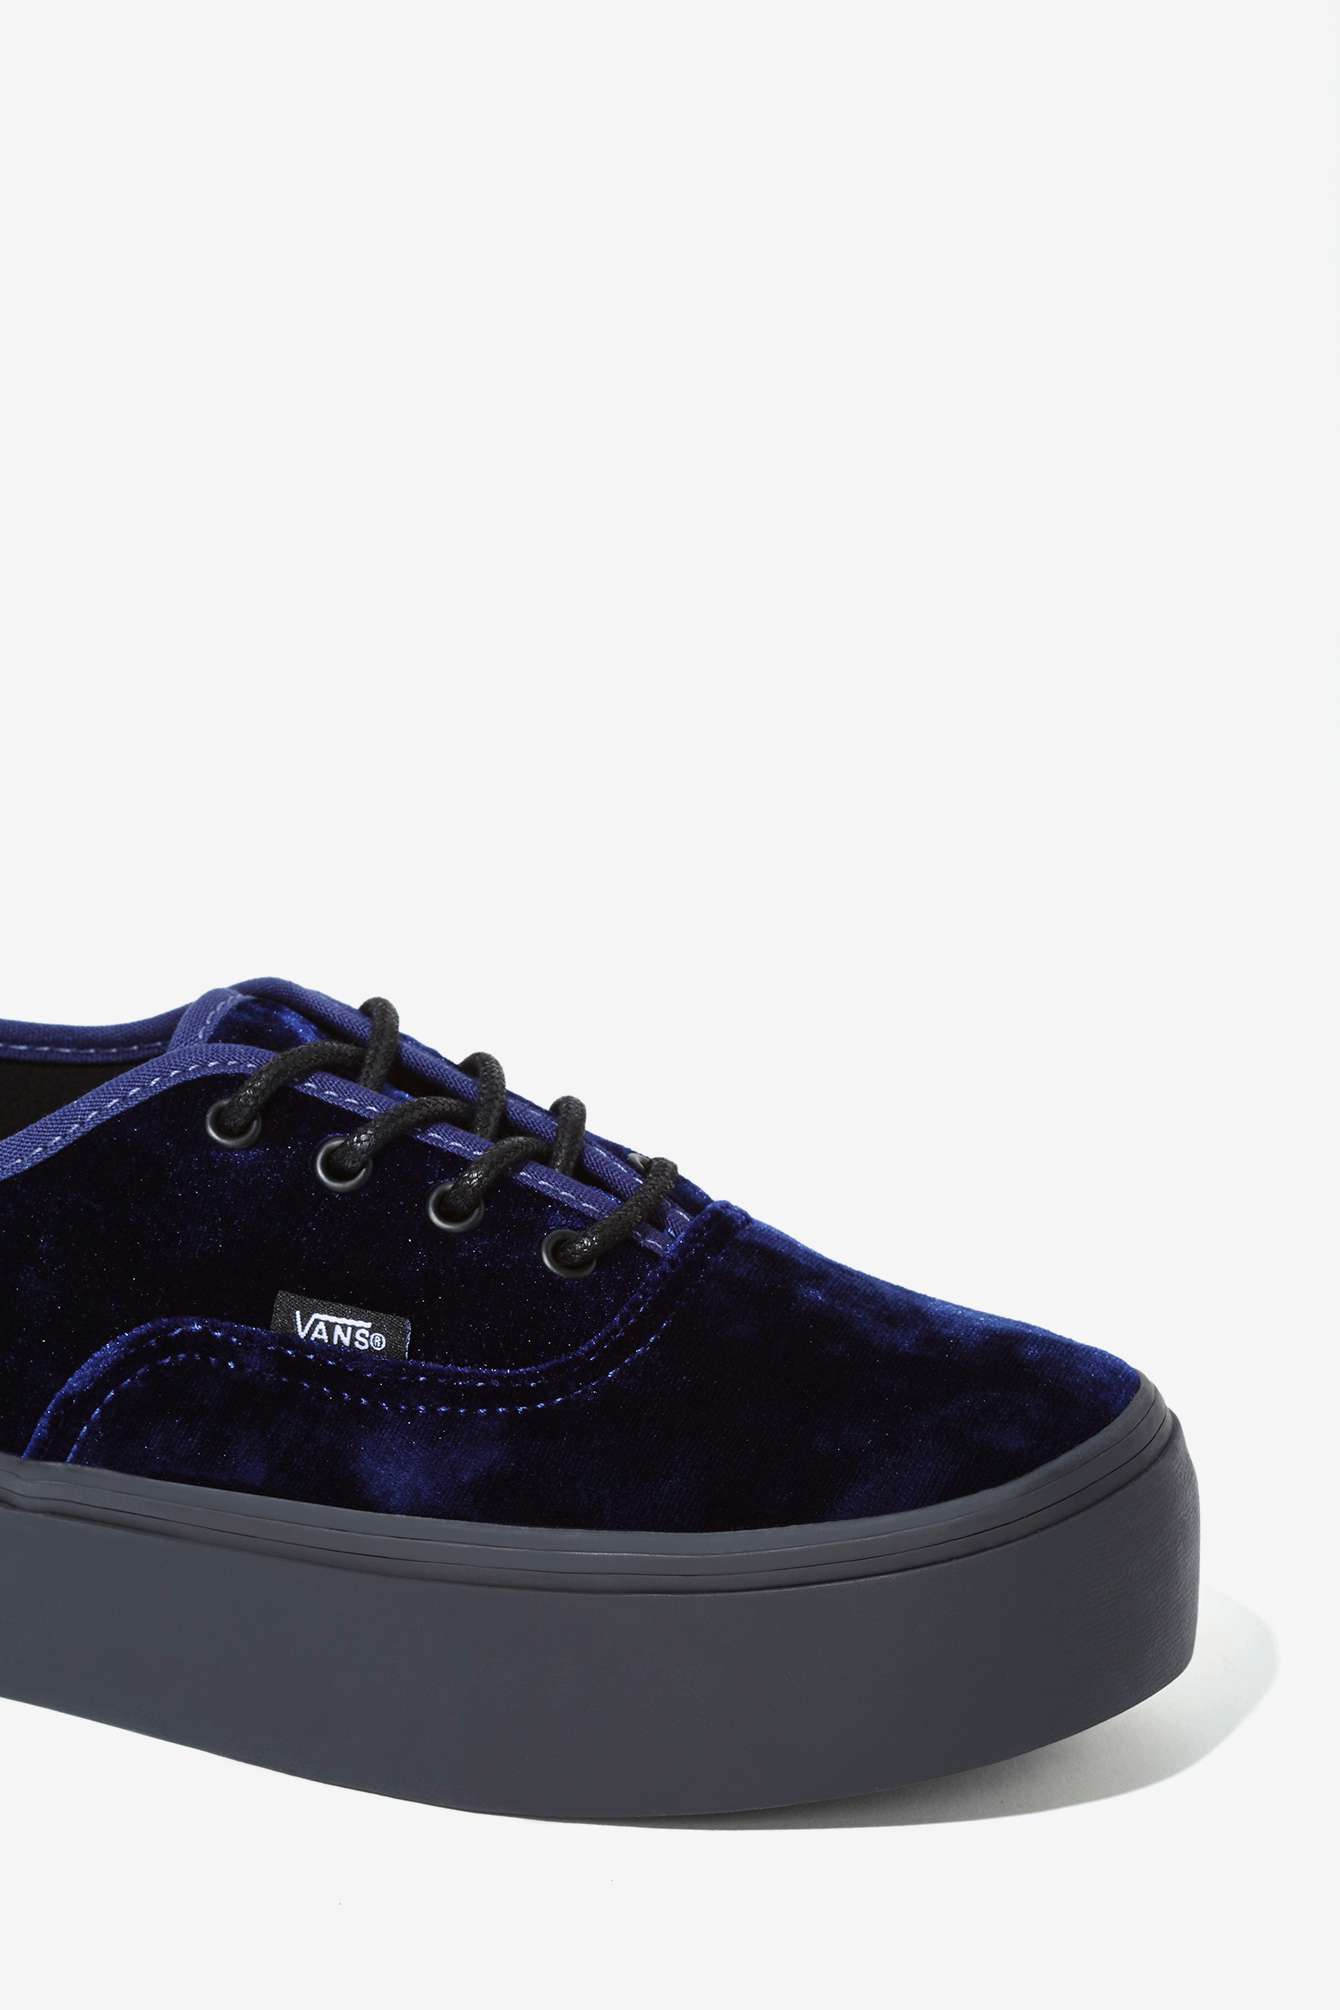 c6f98be65a Lyst - Nasty Gal Vans Authentic Platform Sneaker - Blue Velvet in Blue